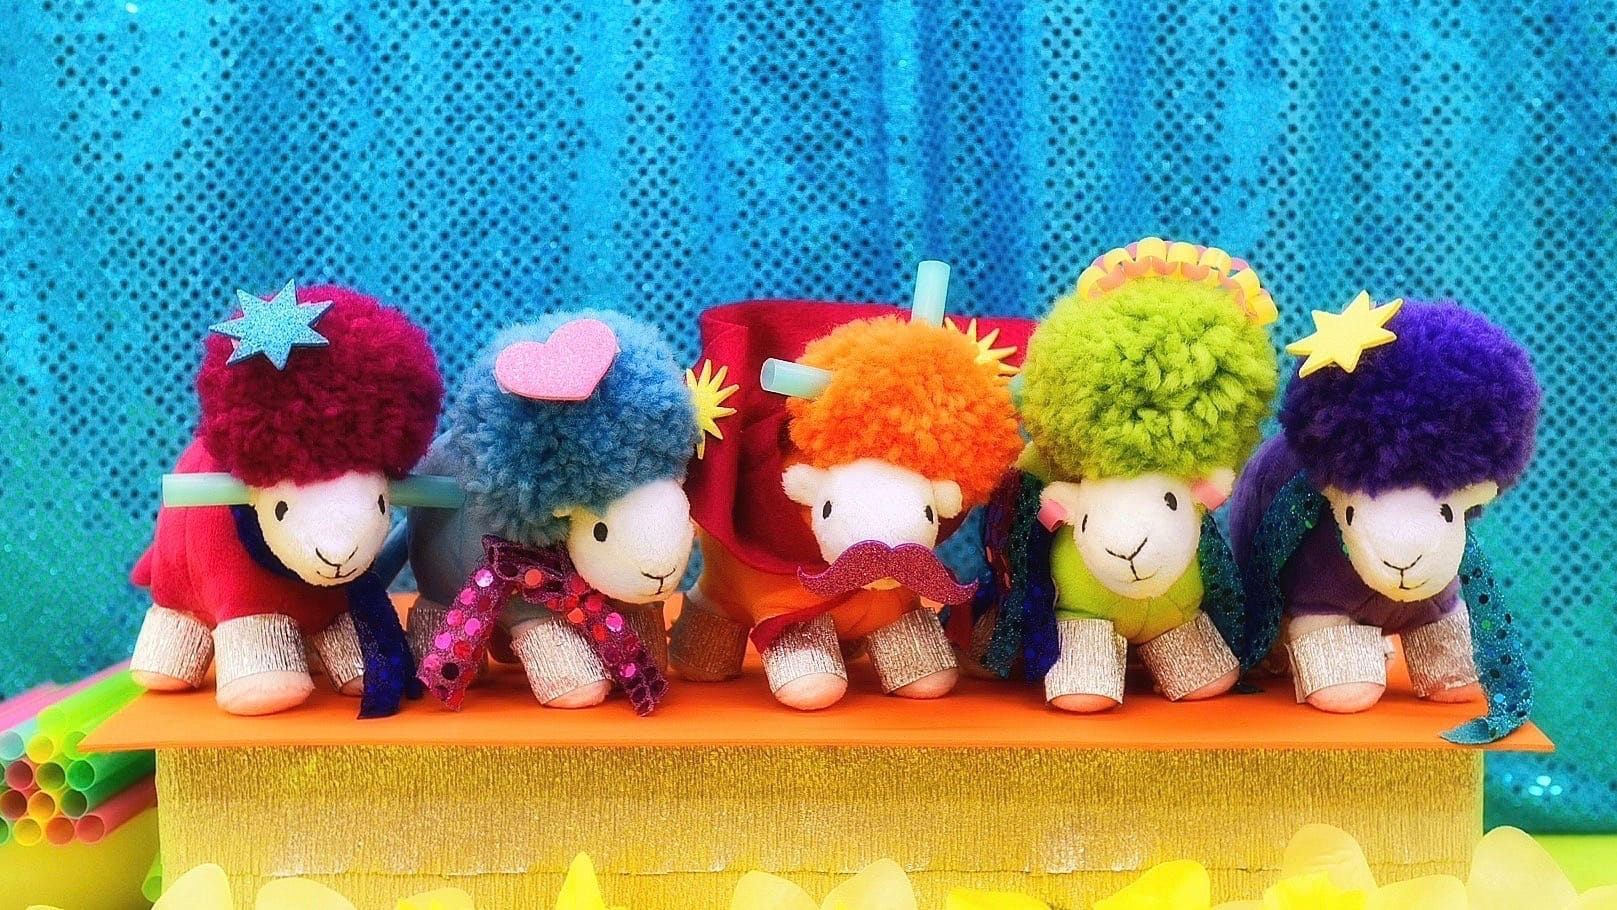 Making The Herdy Five